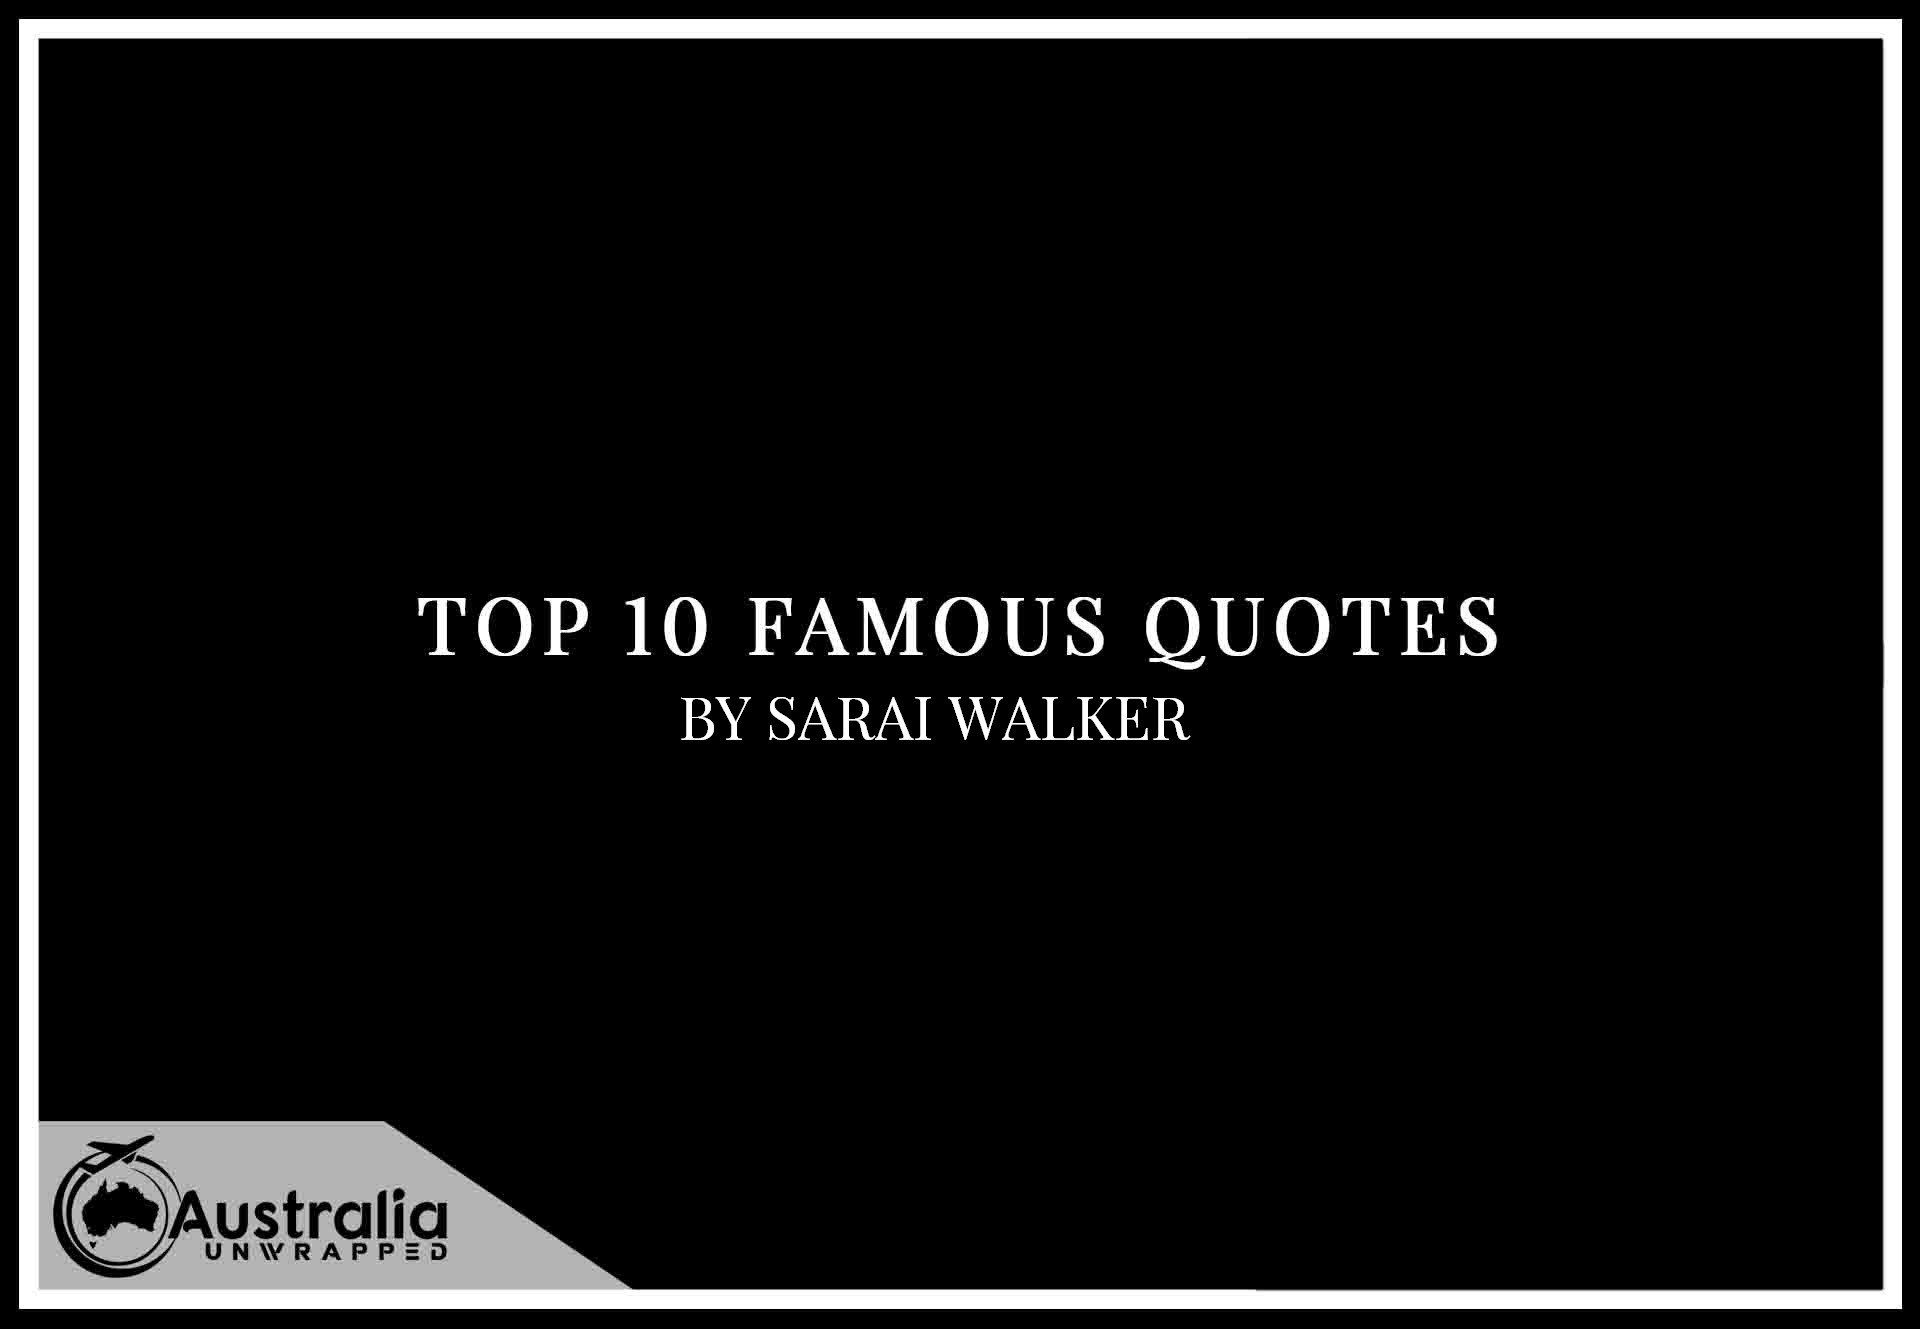 Top 10 Famous Quotes by Author Sarai Walker